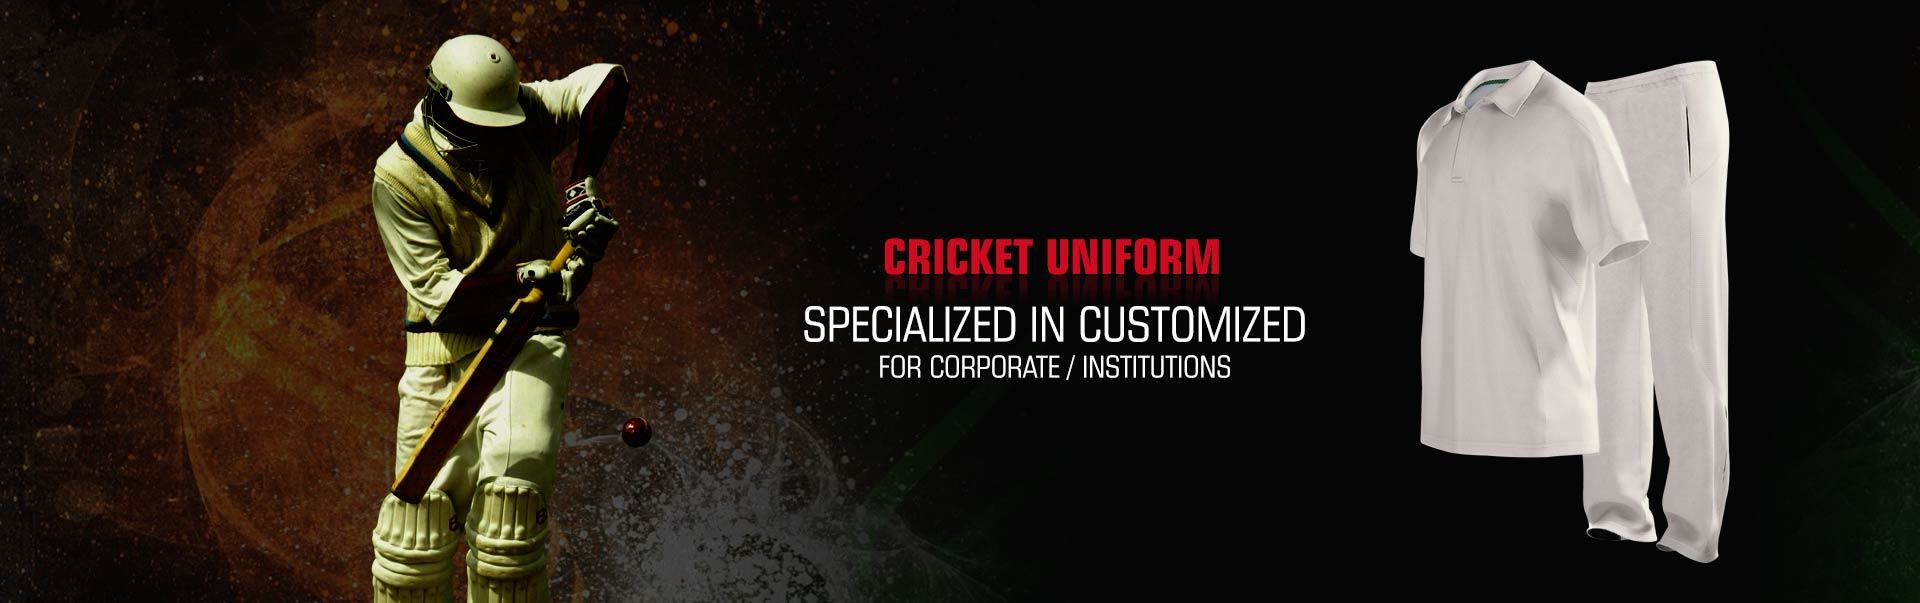 Cricket Uniform Wholesaler, Suppliers in Trieste